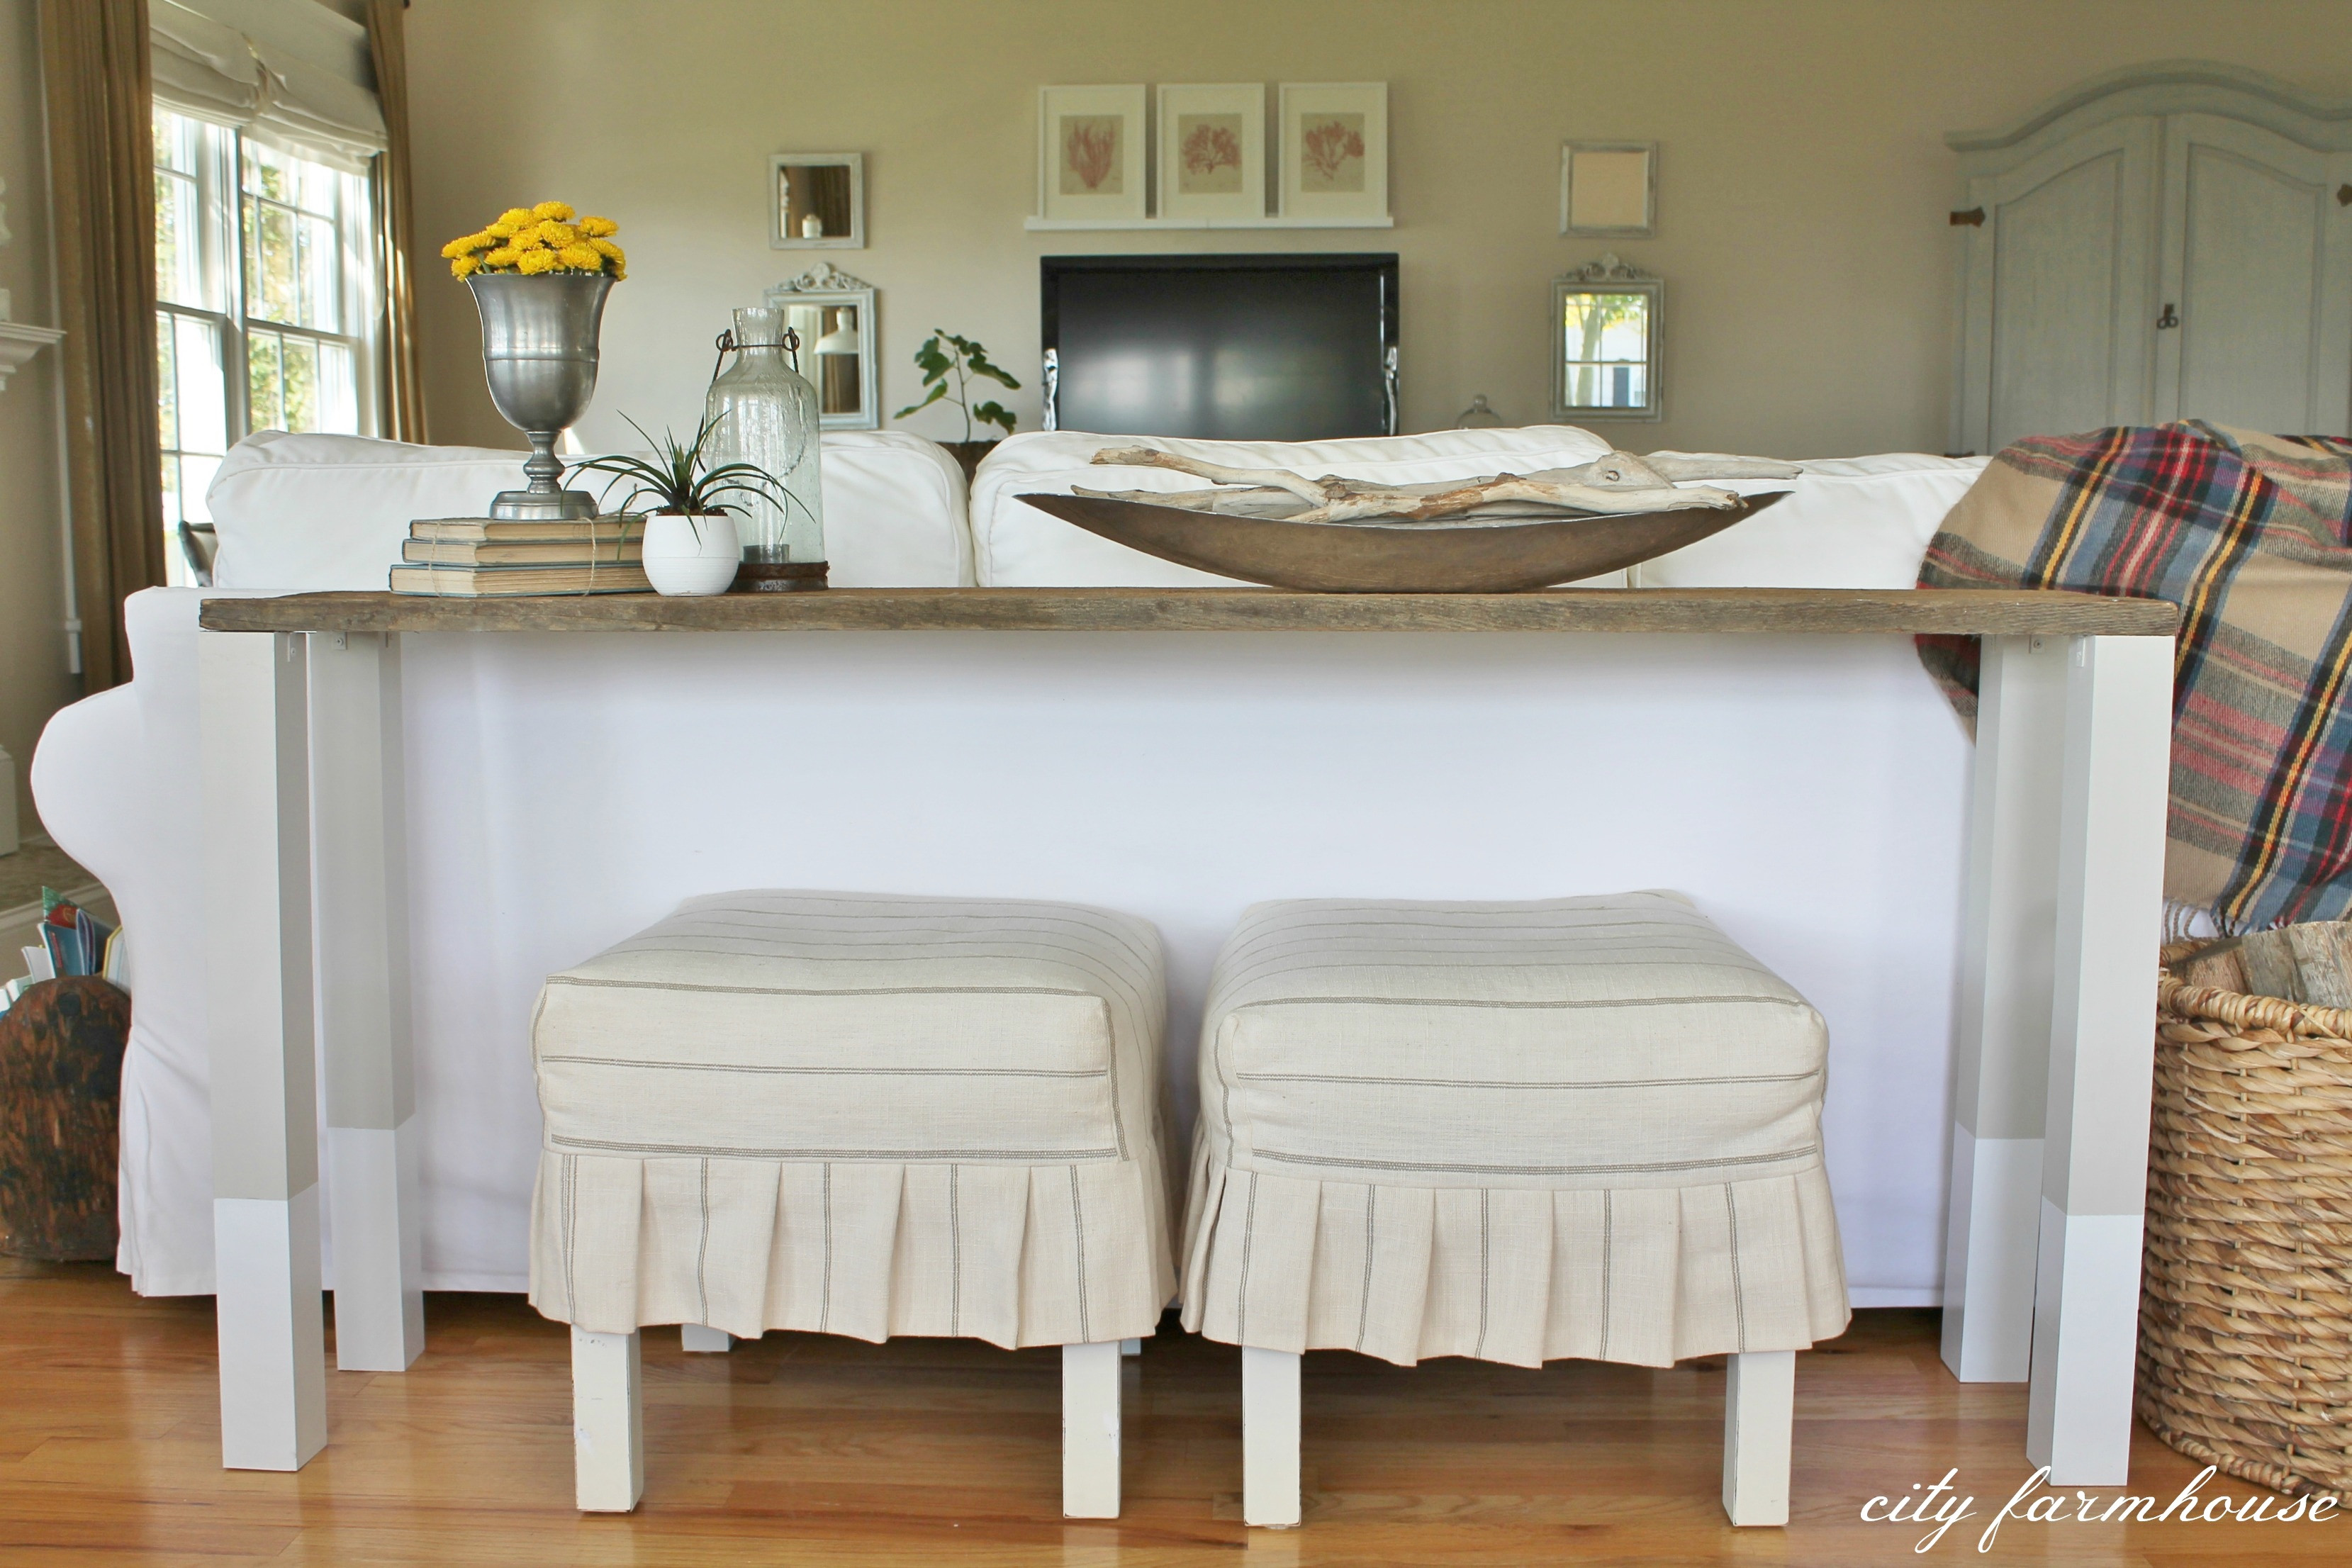 Best ideas about Couch Table DIY . Save or Pin The Easiest DIY Reclaimed Wood Sofa Table City Farmhouse Now.